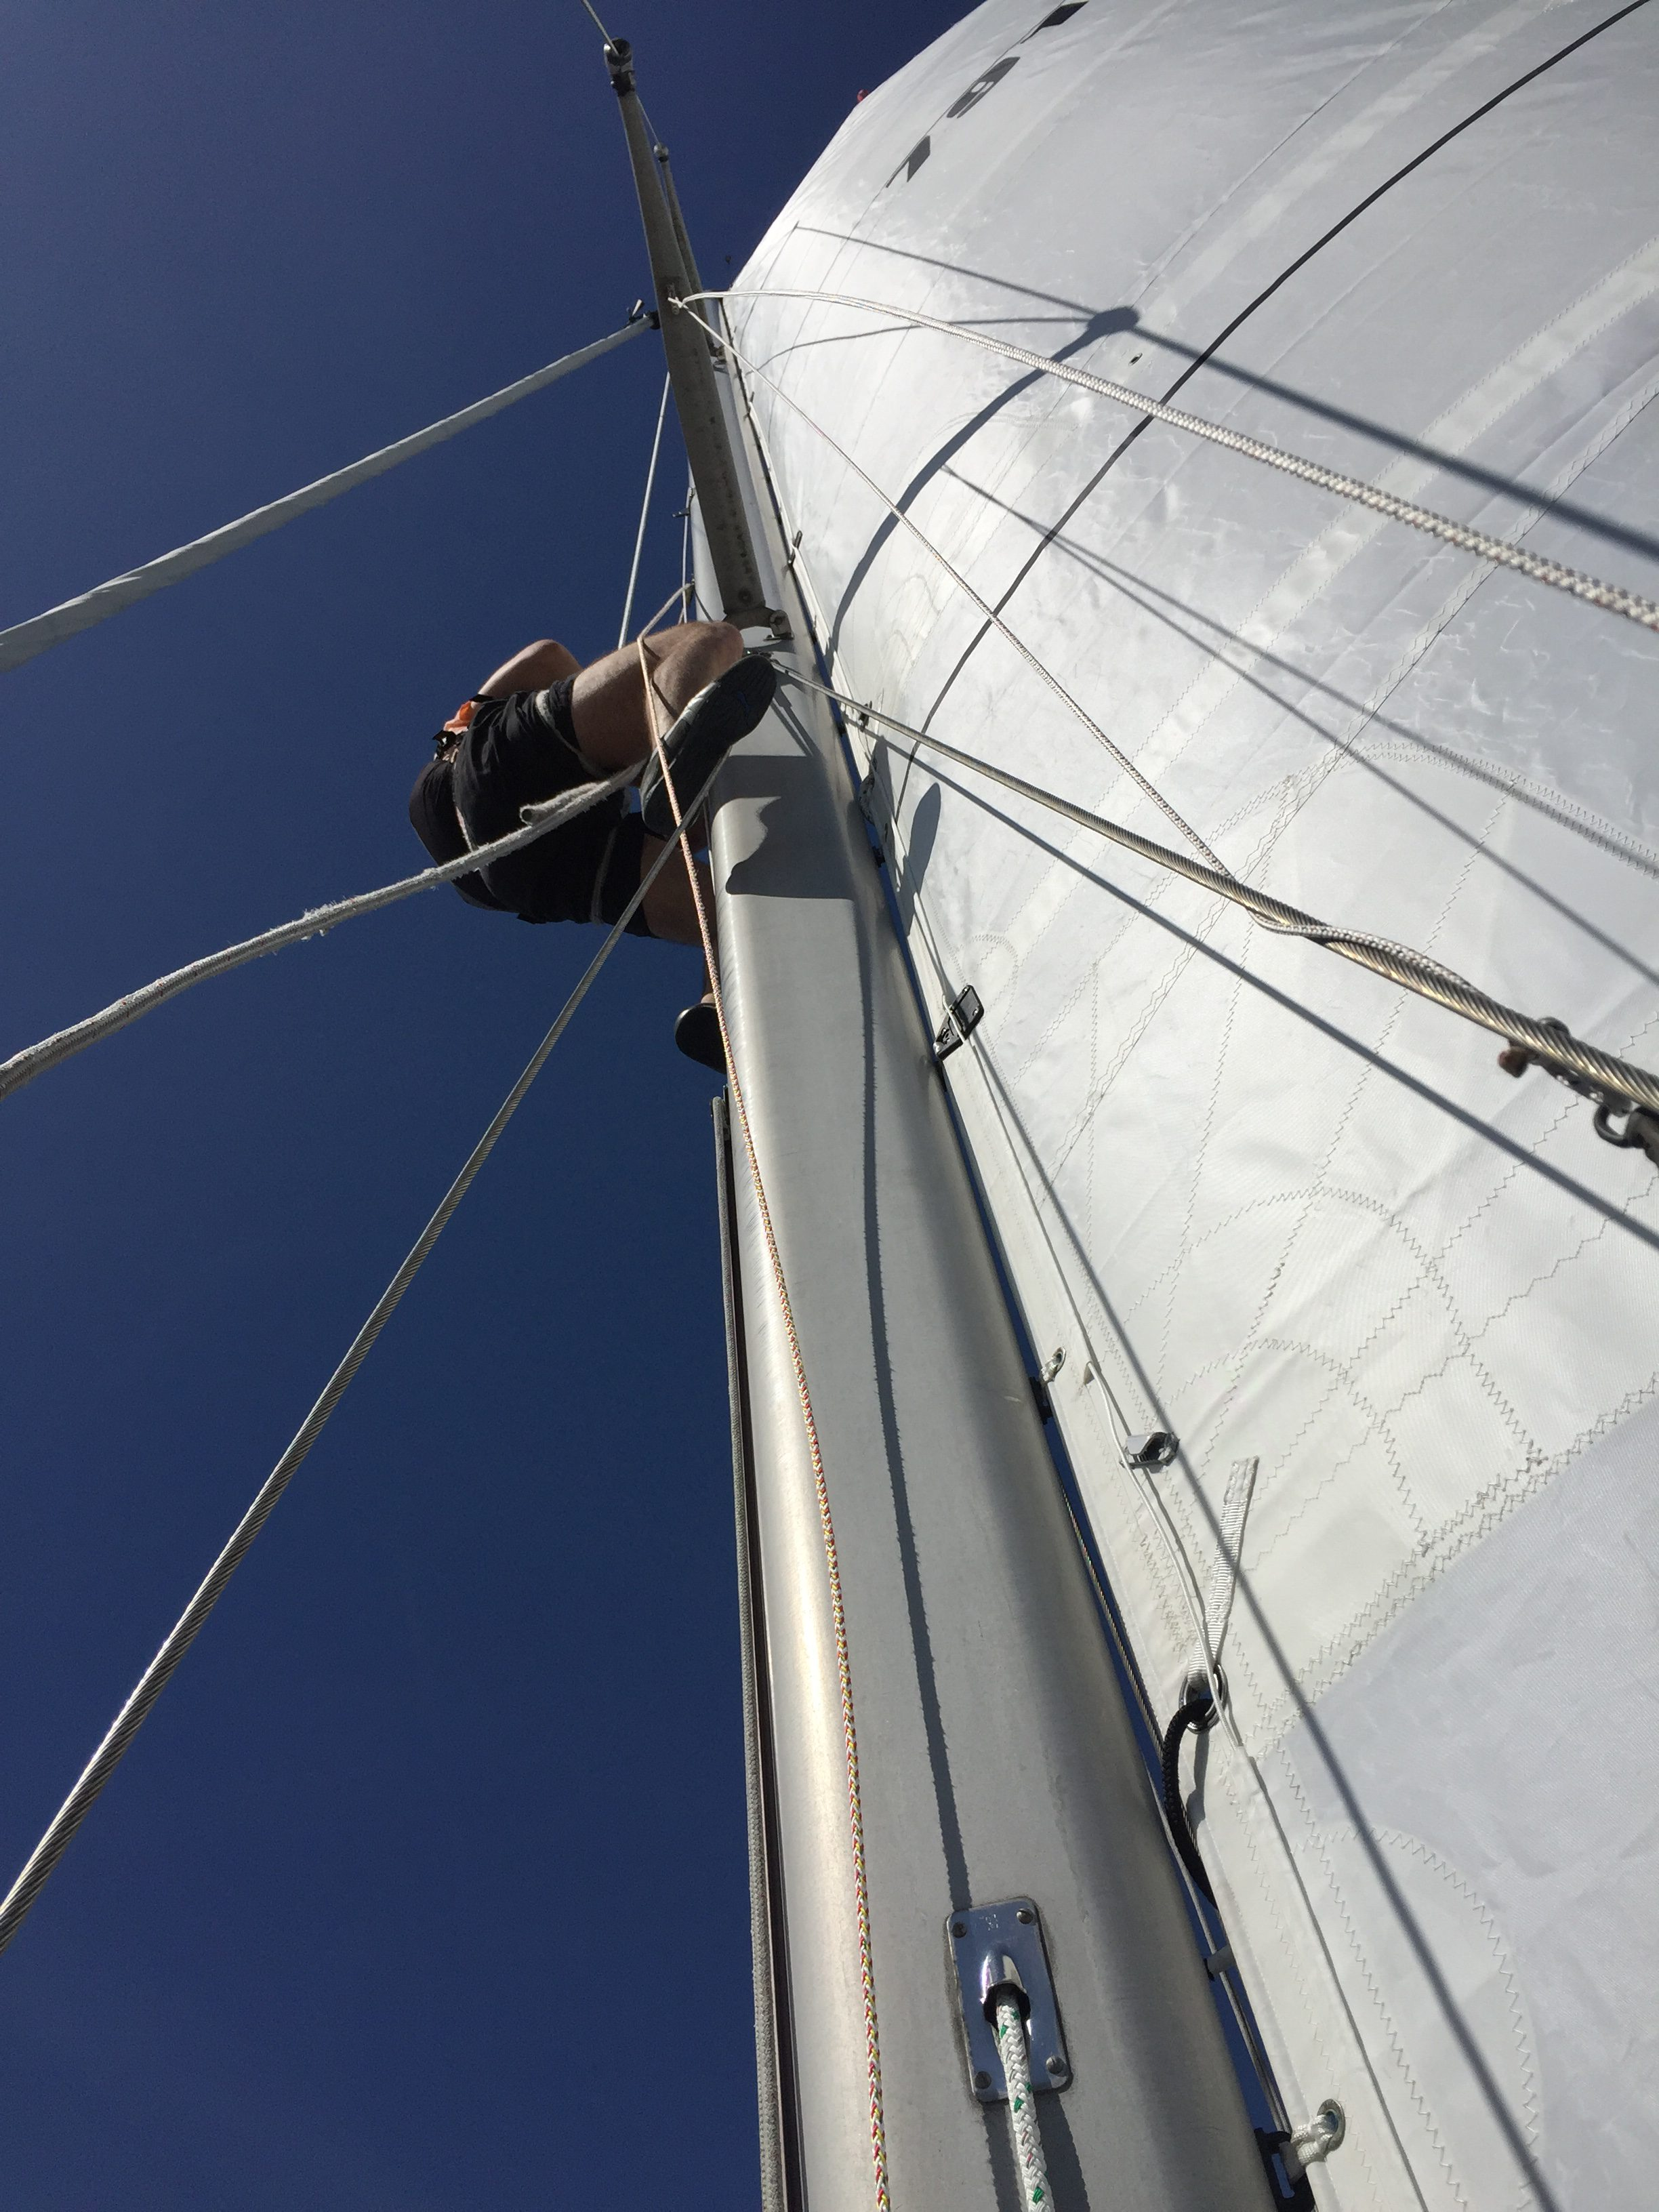 John going aloft